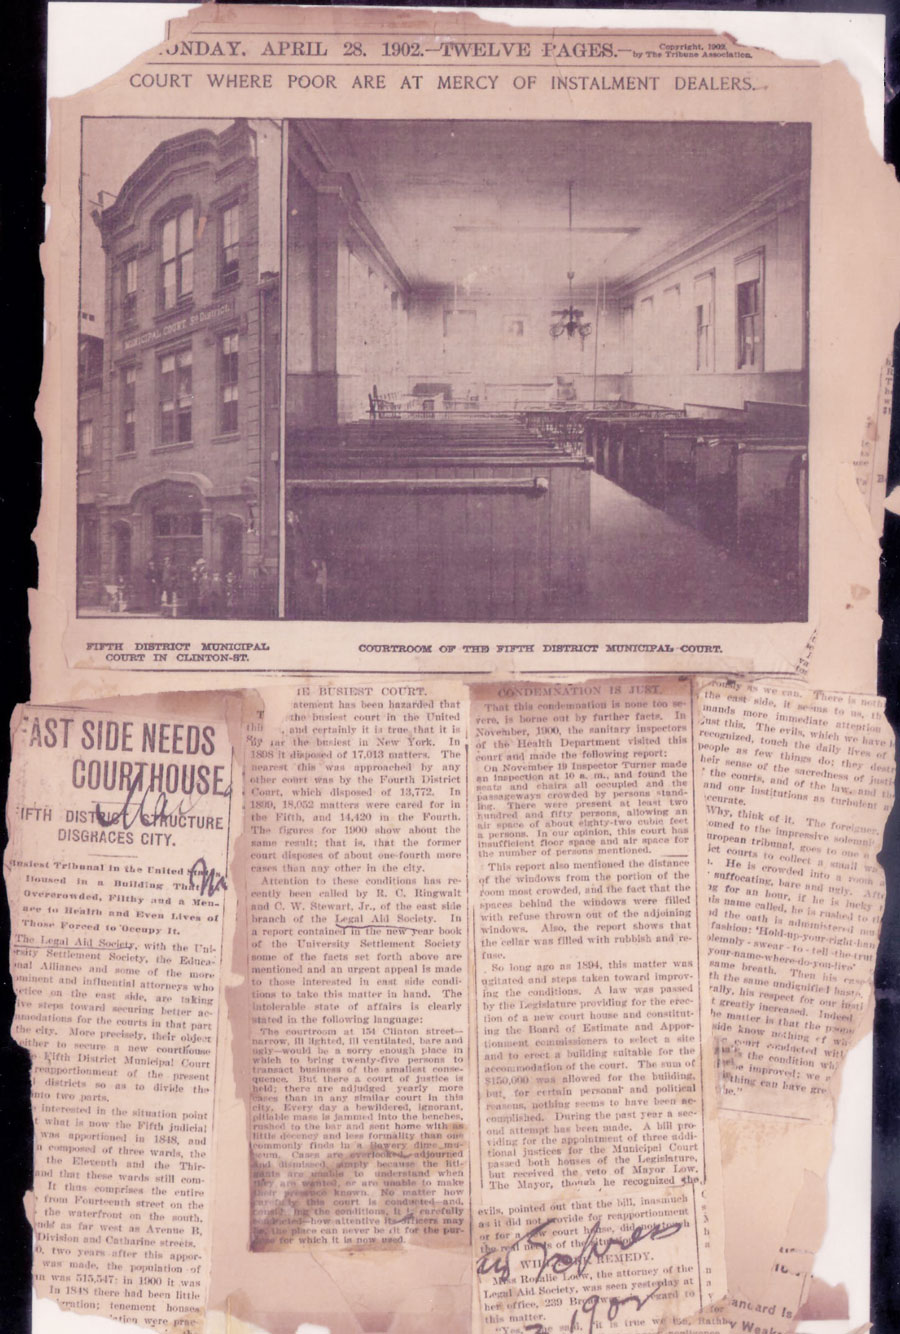 Articles in the Tribune about the Eastside Courthouse